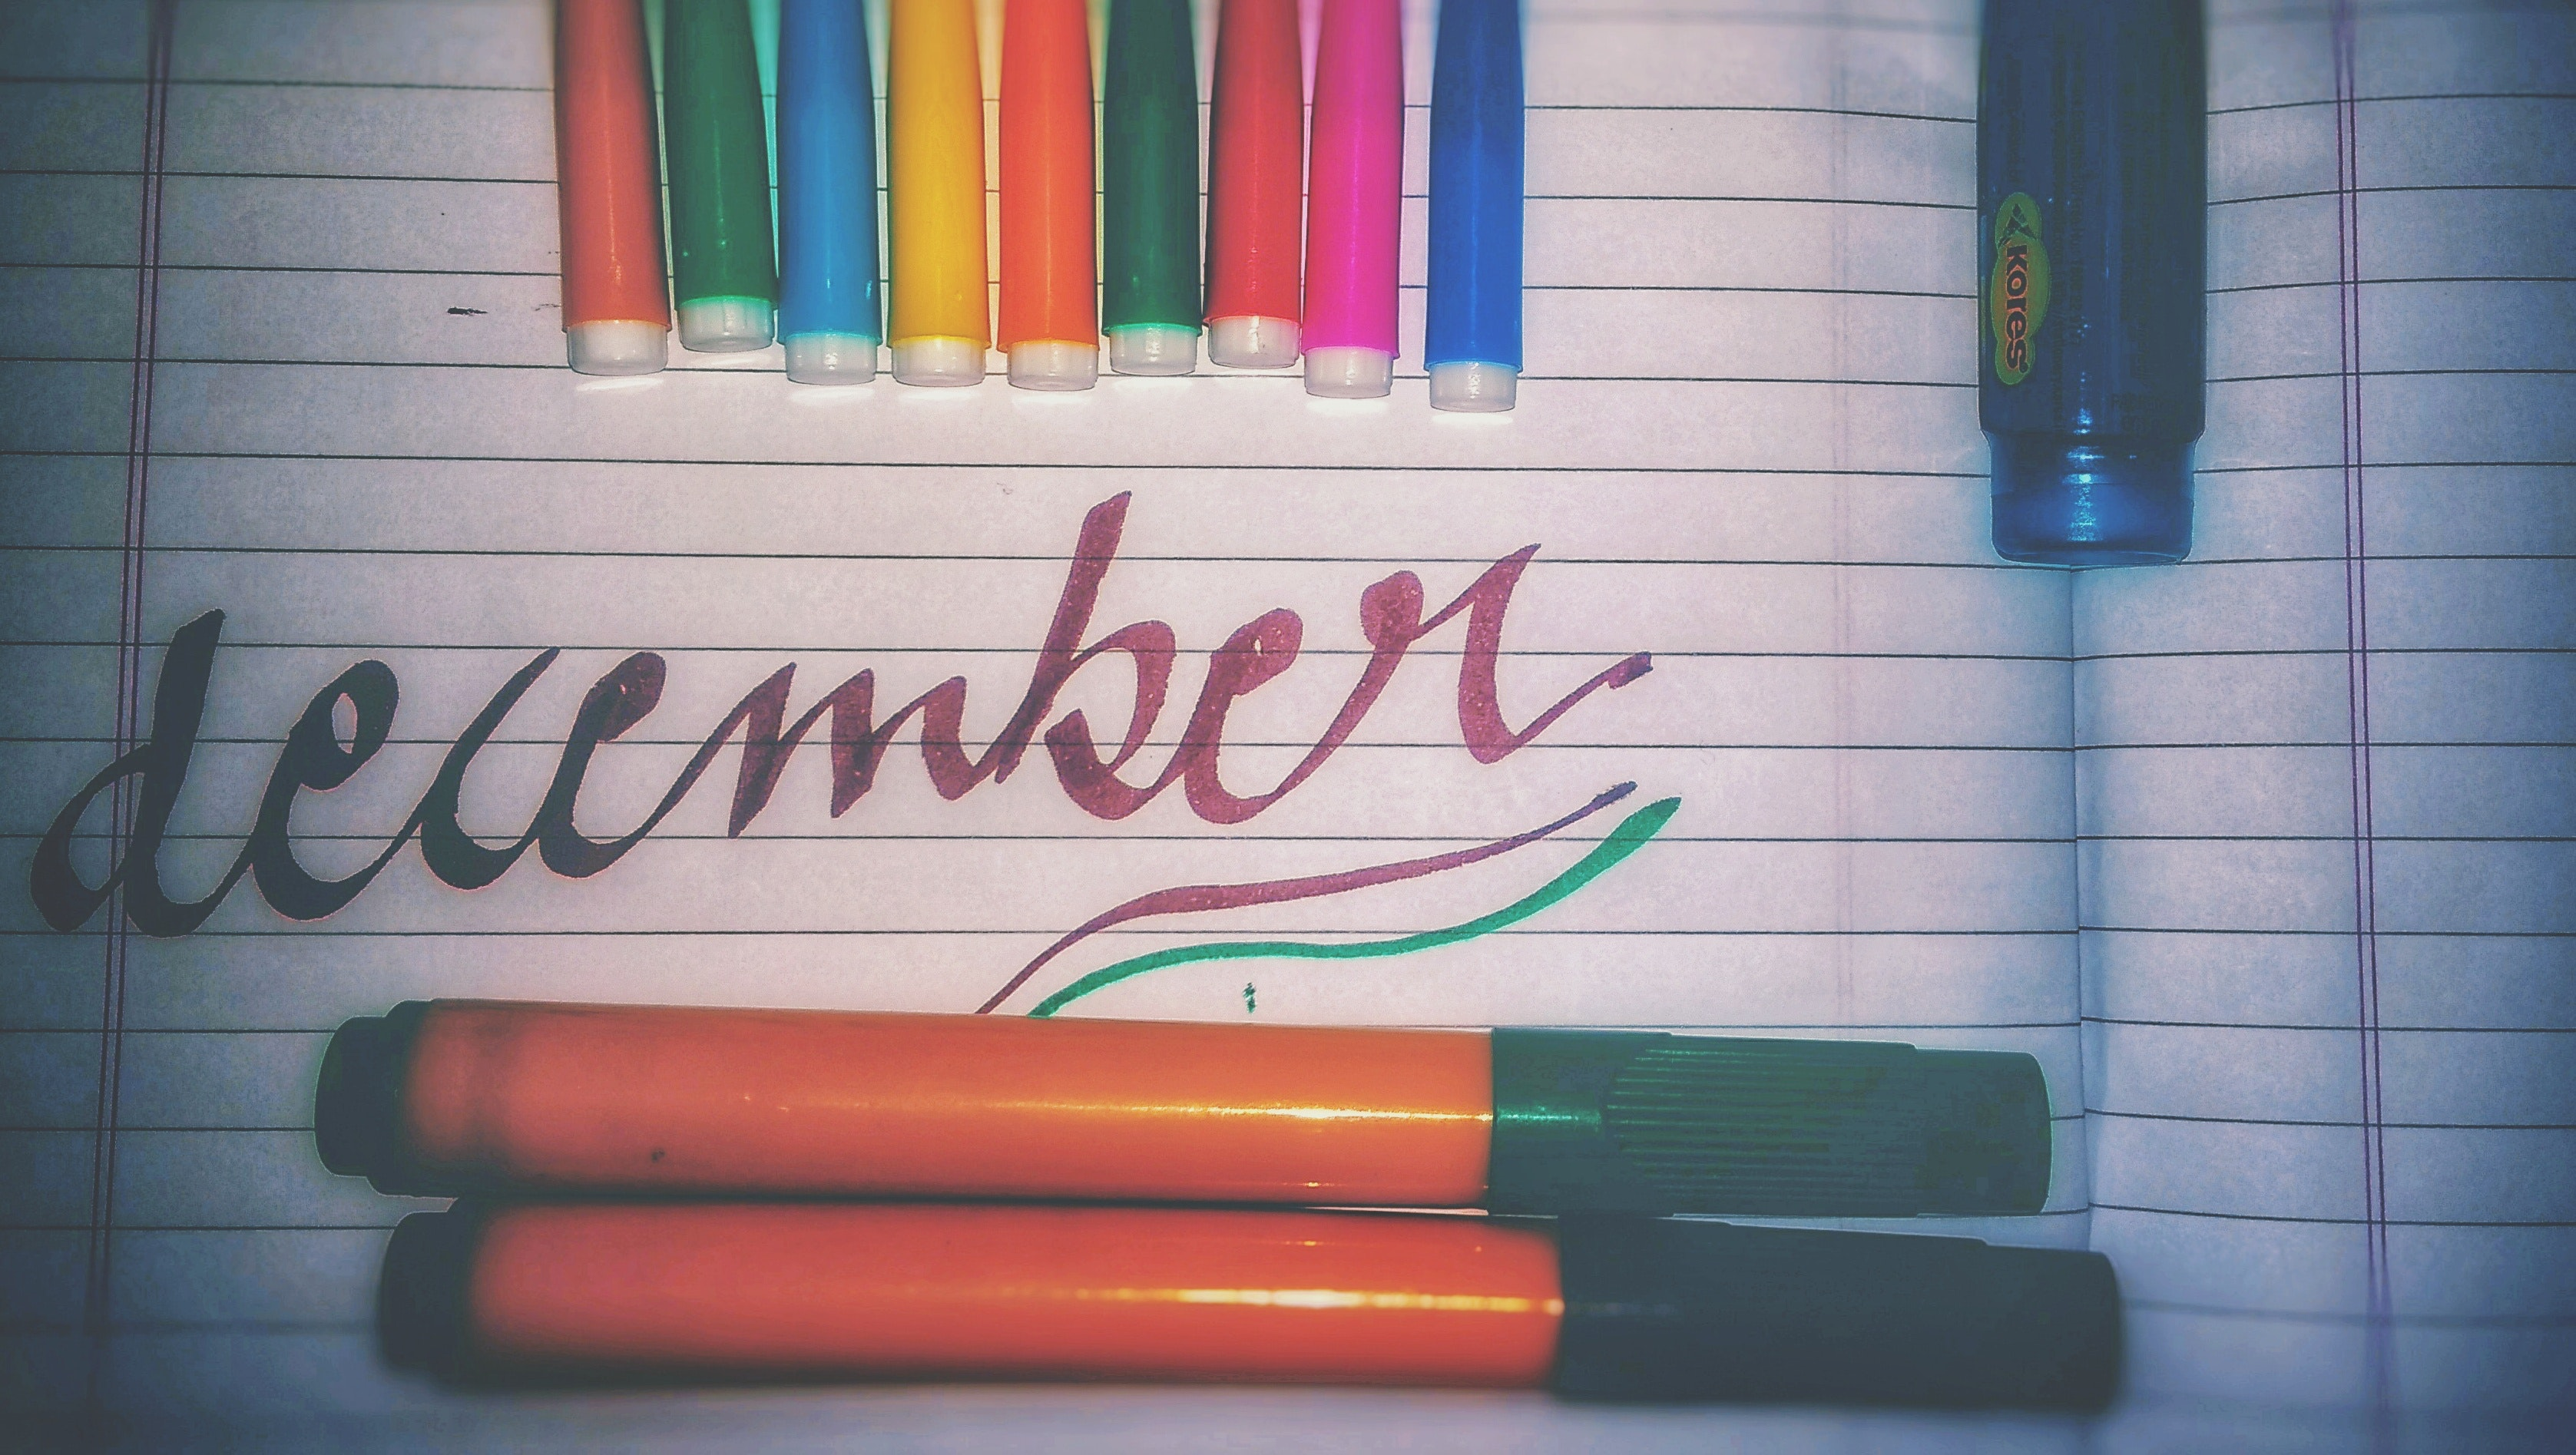 Assorted Color Pens, Art, Ink, Write, Stationery, HQ Photo